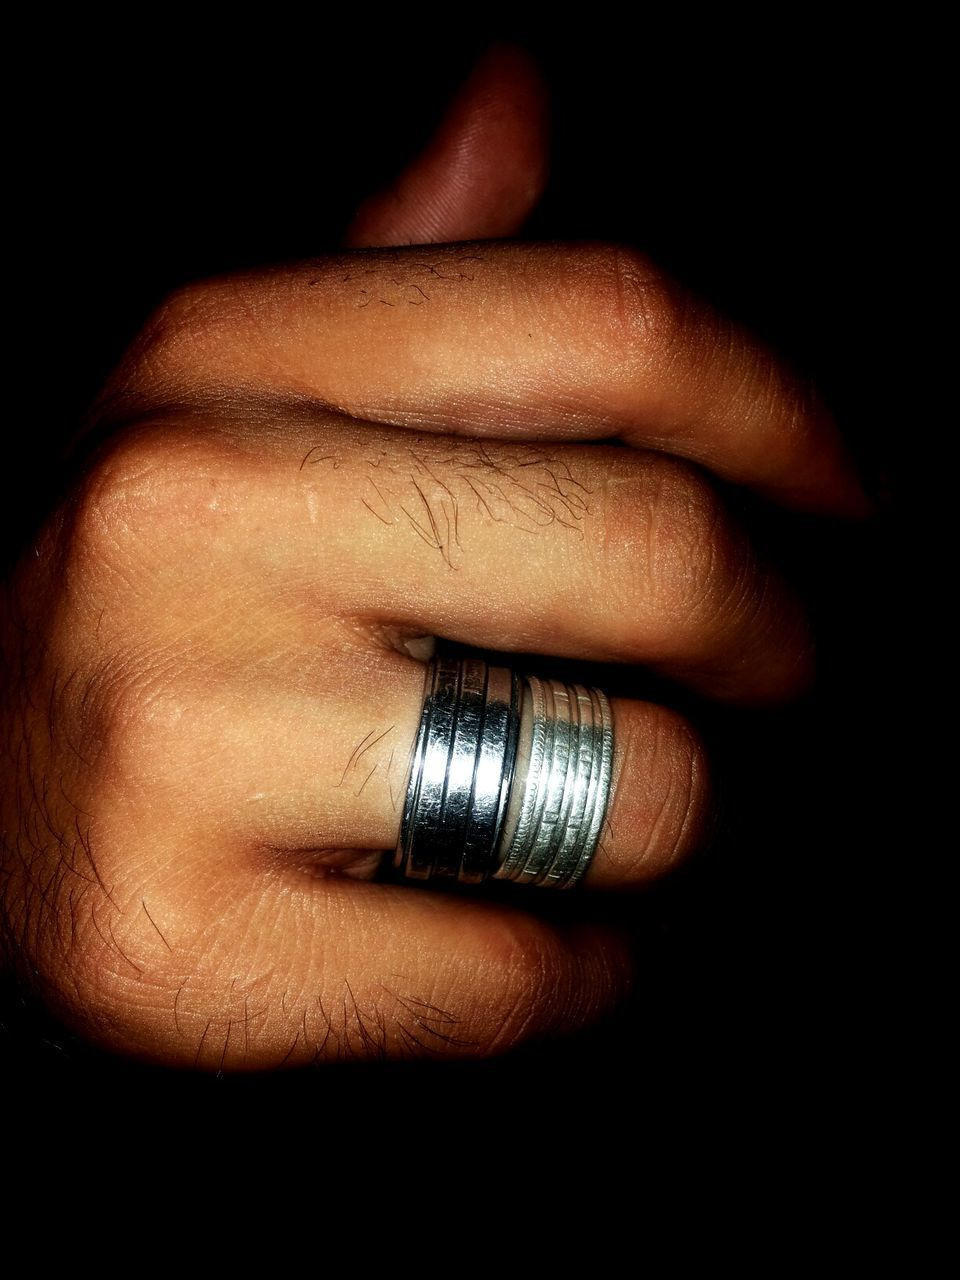 black background, studio shot, human body part, human hand, close-up, one person, indoors, adult, people